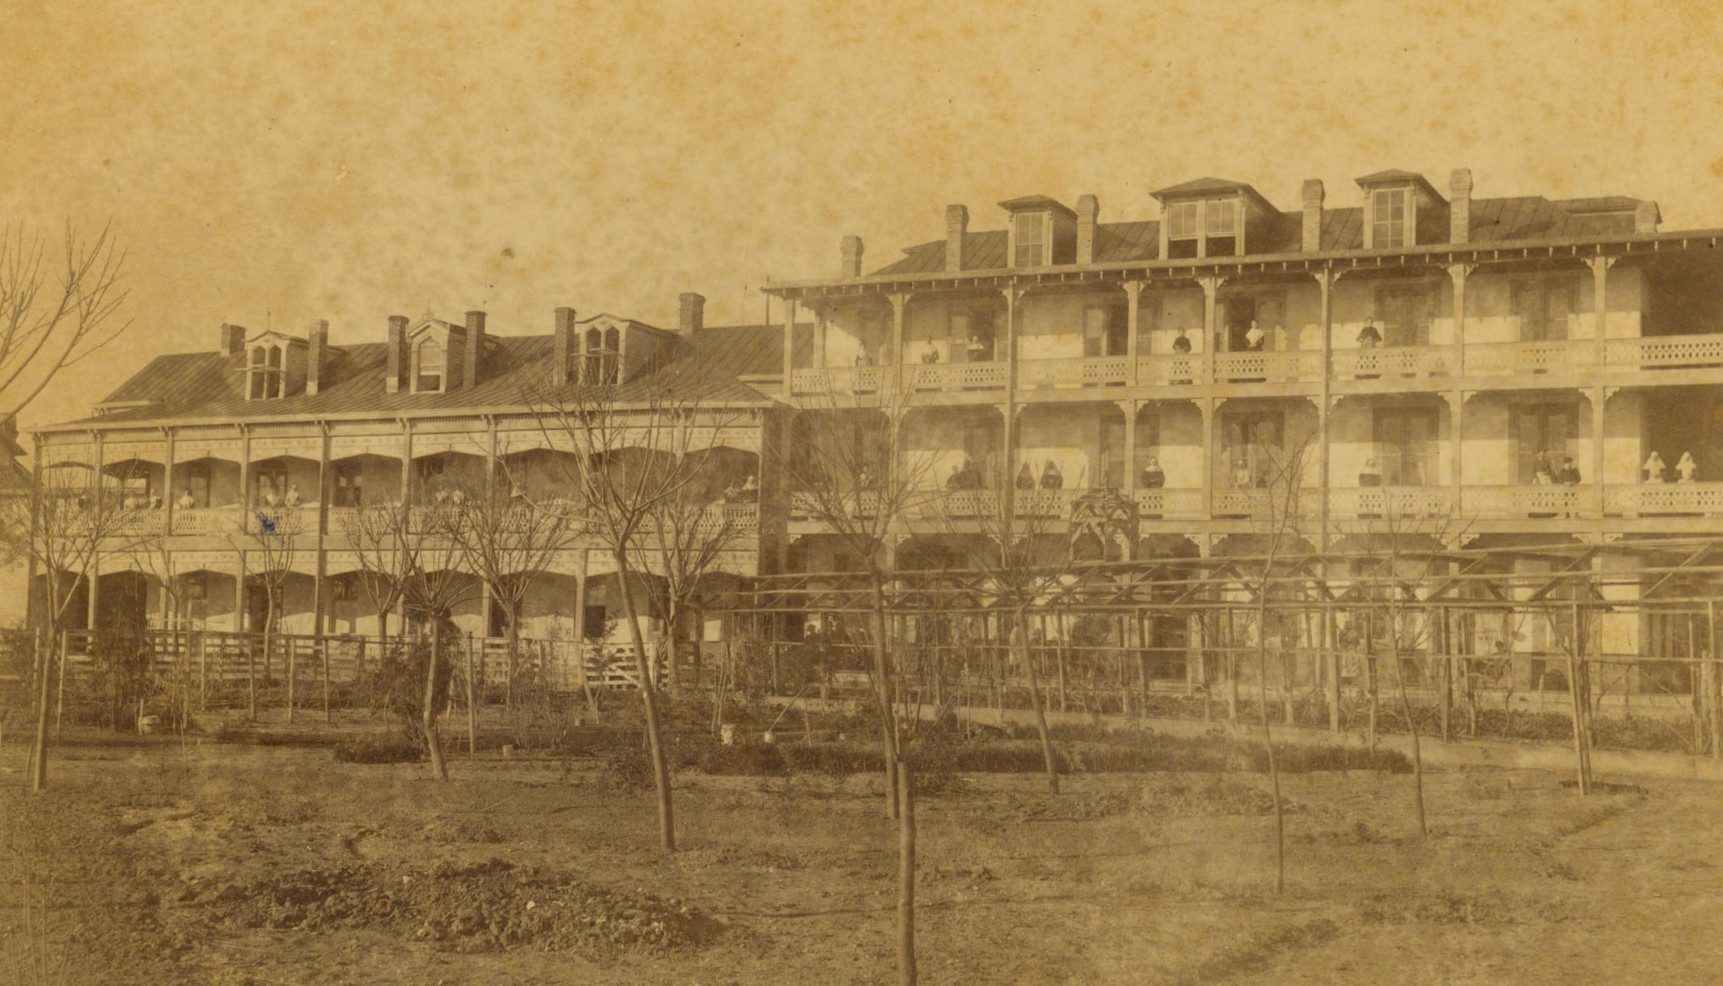 The Congregation moved Santa Rosa Infirmary from its original location at Commerce and Cameron streets in 1875 to its present location on Houston Street.